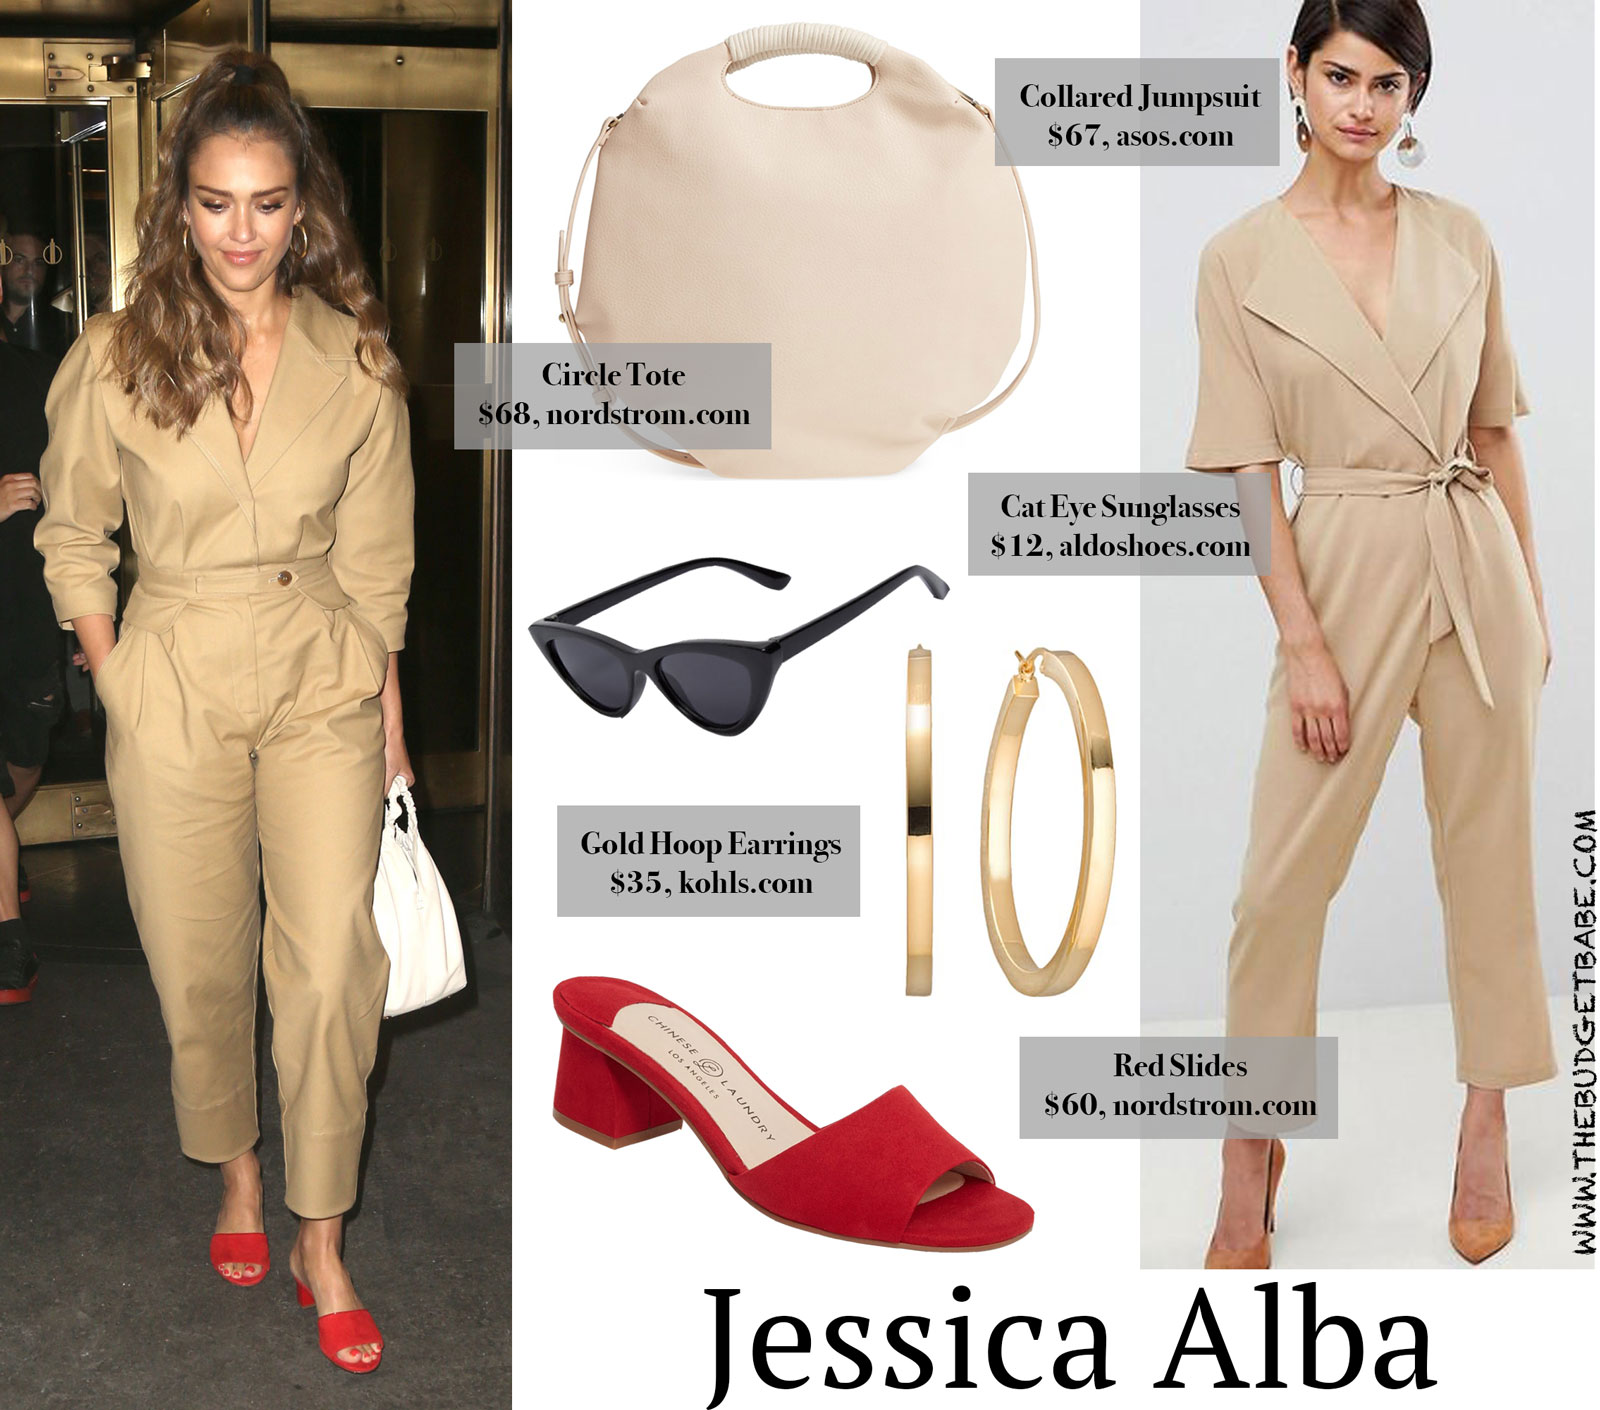 Jessica Alba Tan Jumpsuit and Red Slides Look for Less